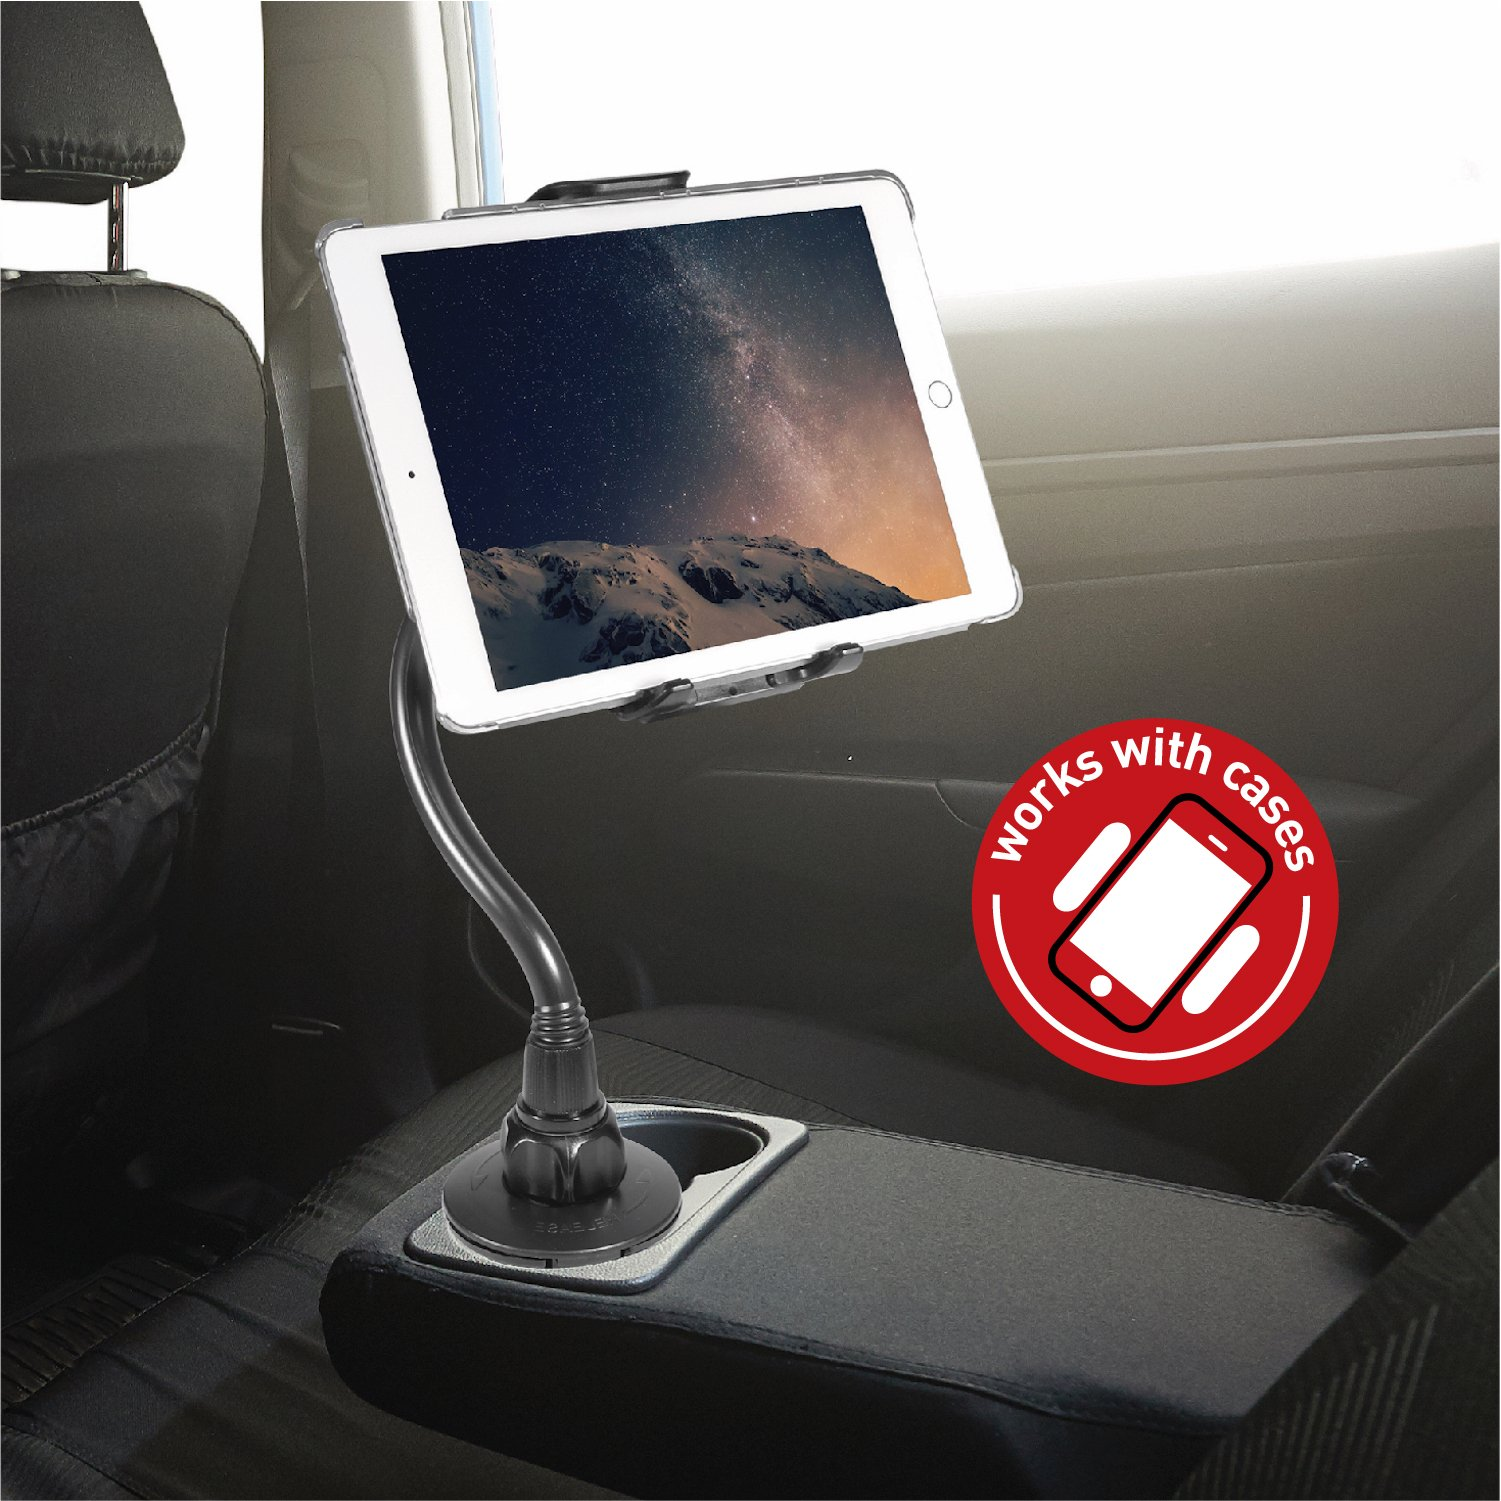 Air Macally 2-in-1 Tablet /& Smartphone Car Cup Holder Mount with Flexible Neck for Apple iPad Pro 10.5 iPhone Xs XS Max XR X 8 8 Plus /& Any Device up to 8 iPhone Xs XS Max XR X 8 8 Plus /& Any Device up to 8 MCUPTAB Samsung Galaxy Tab MCUPTAB Mini